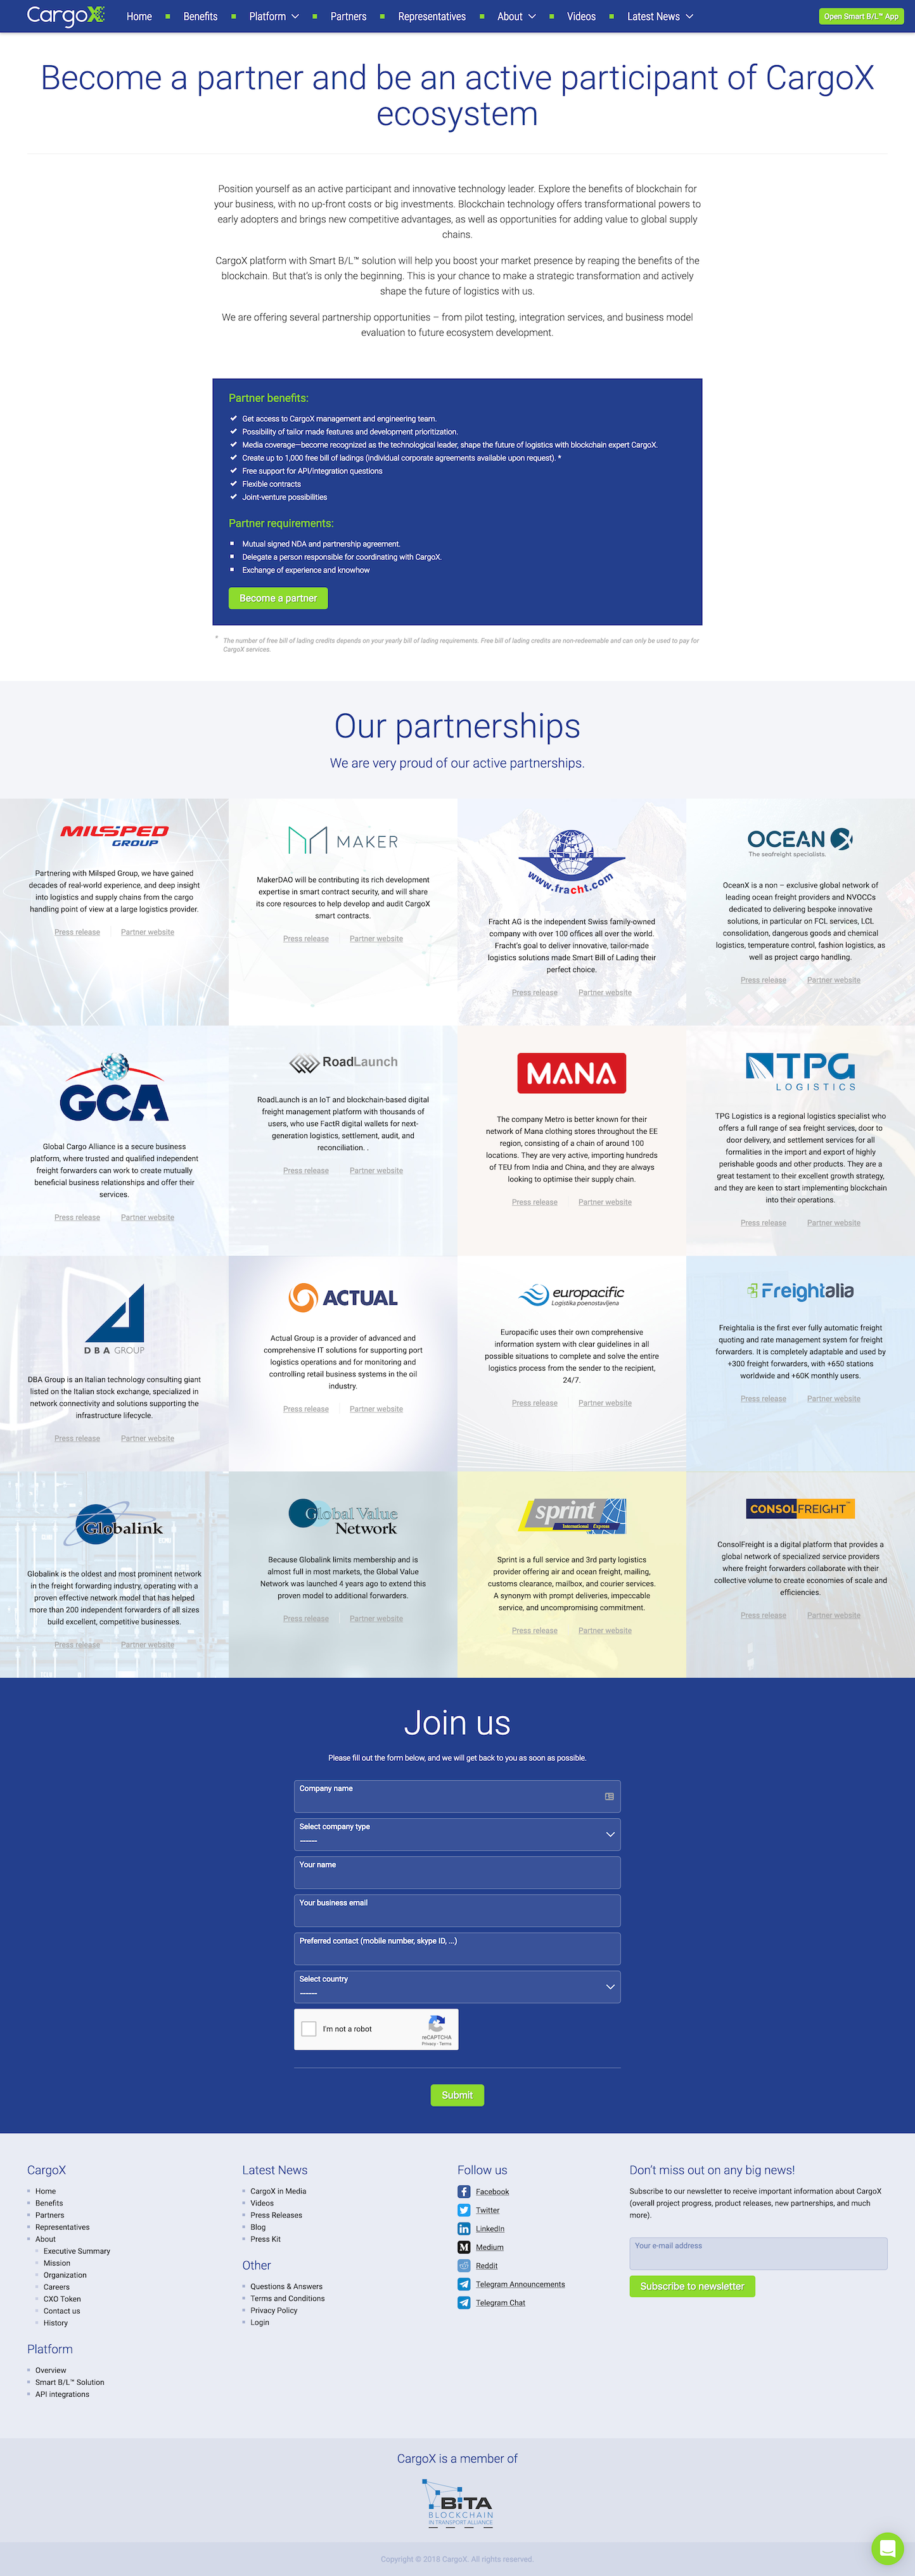 Screenshot of the Partners page from the CargoX website.